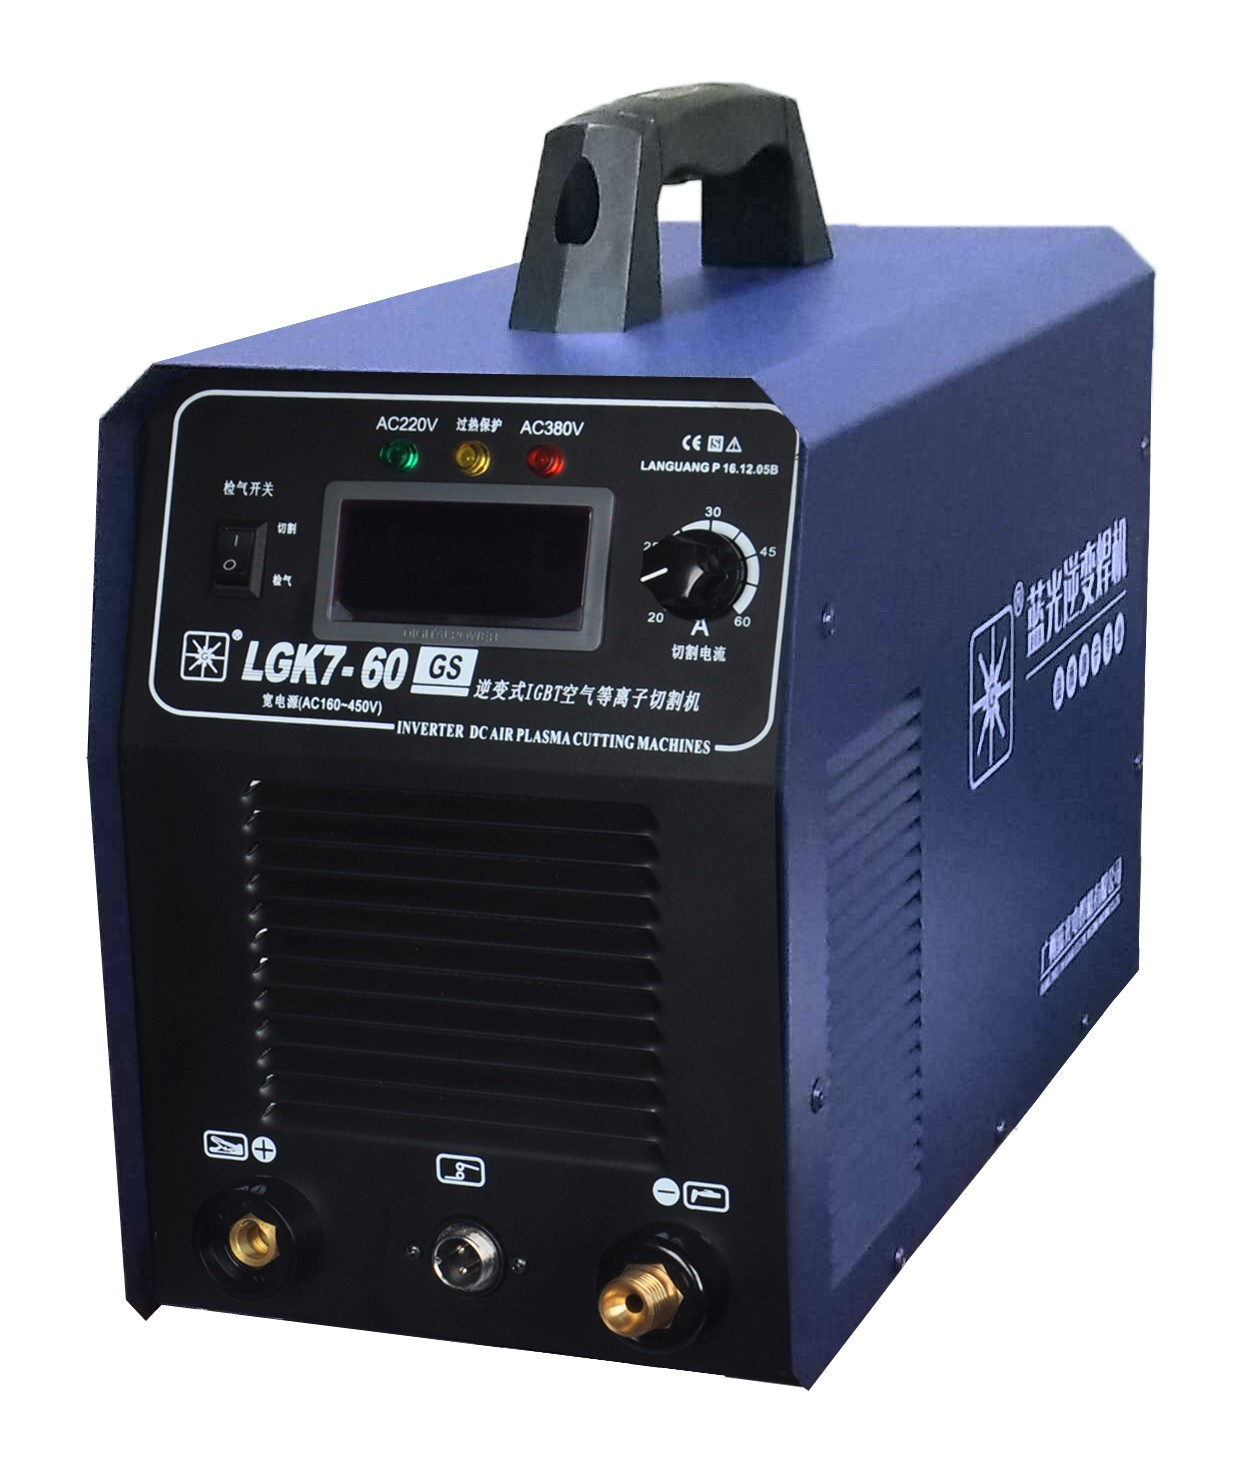 LGK7-60GS (wide voltage) air plasma cutting machine